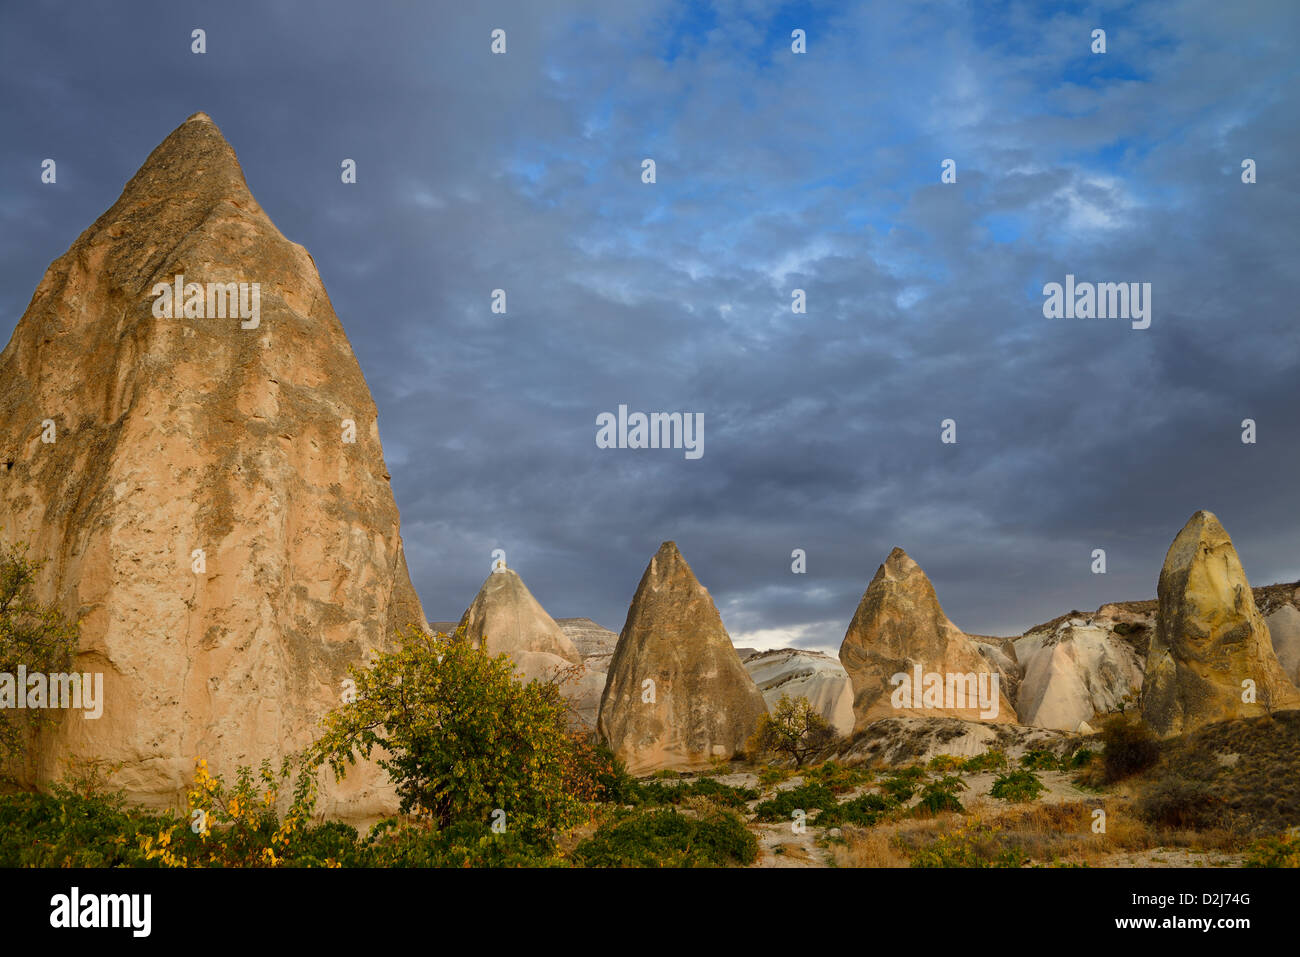 Evening light on pointed Rock spires of the Red Valley Cappadocia Nevsehir Turkey - Stock Image